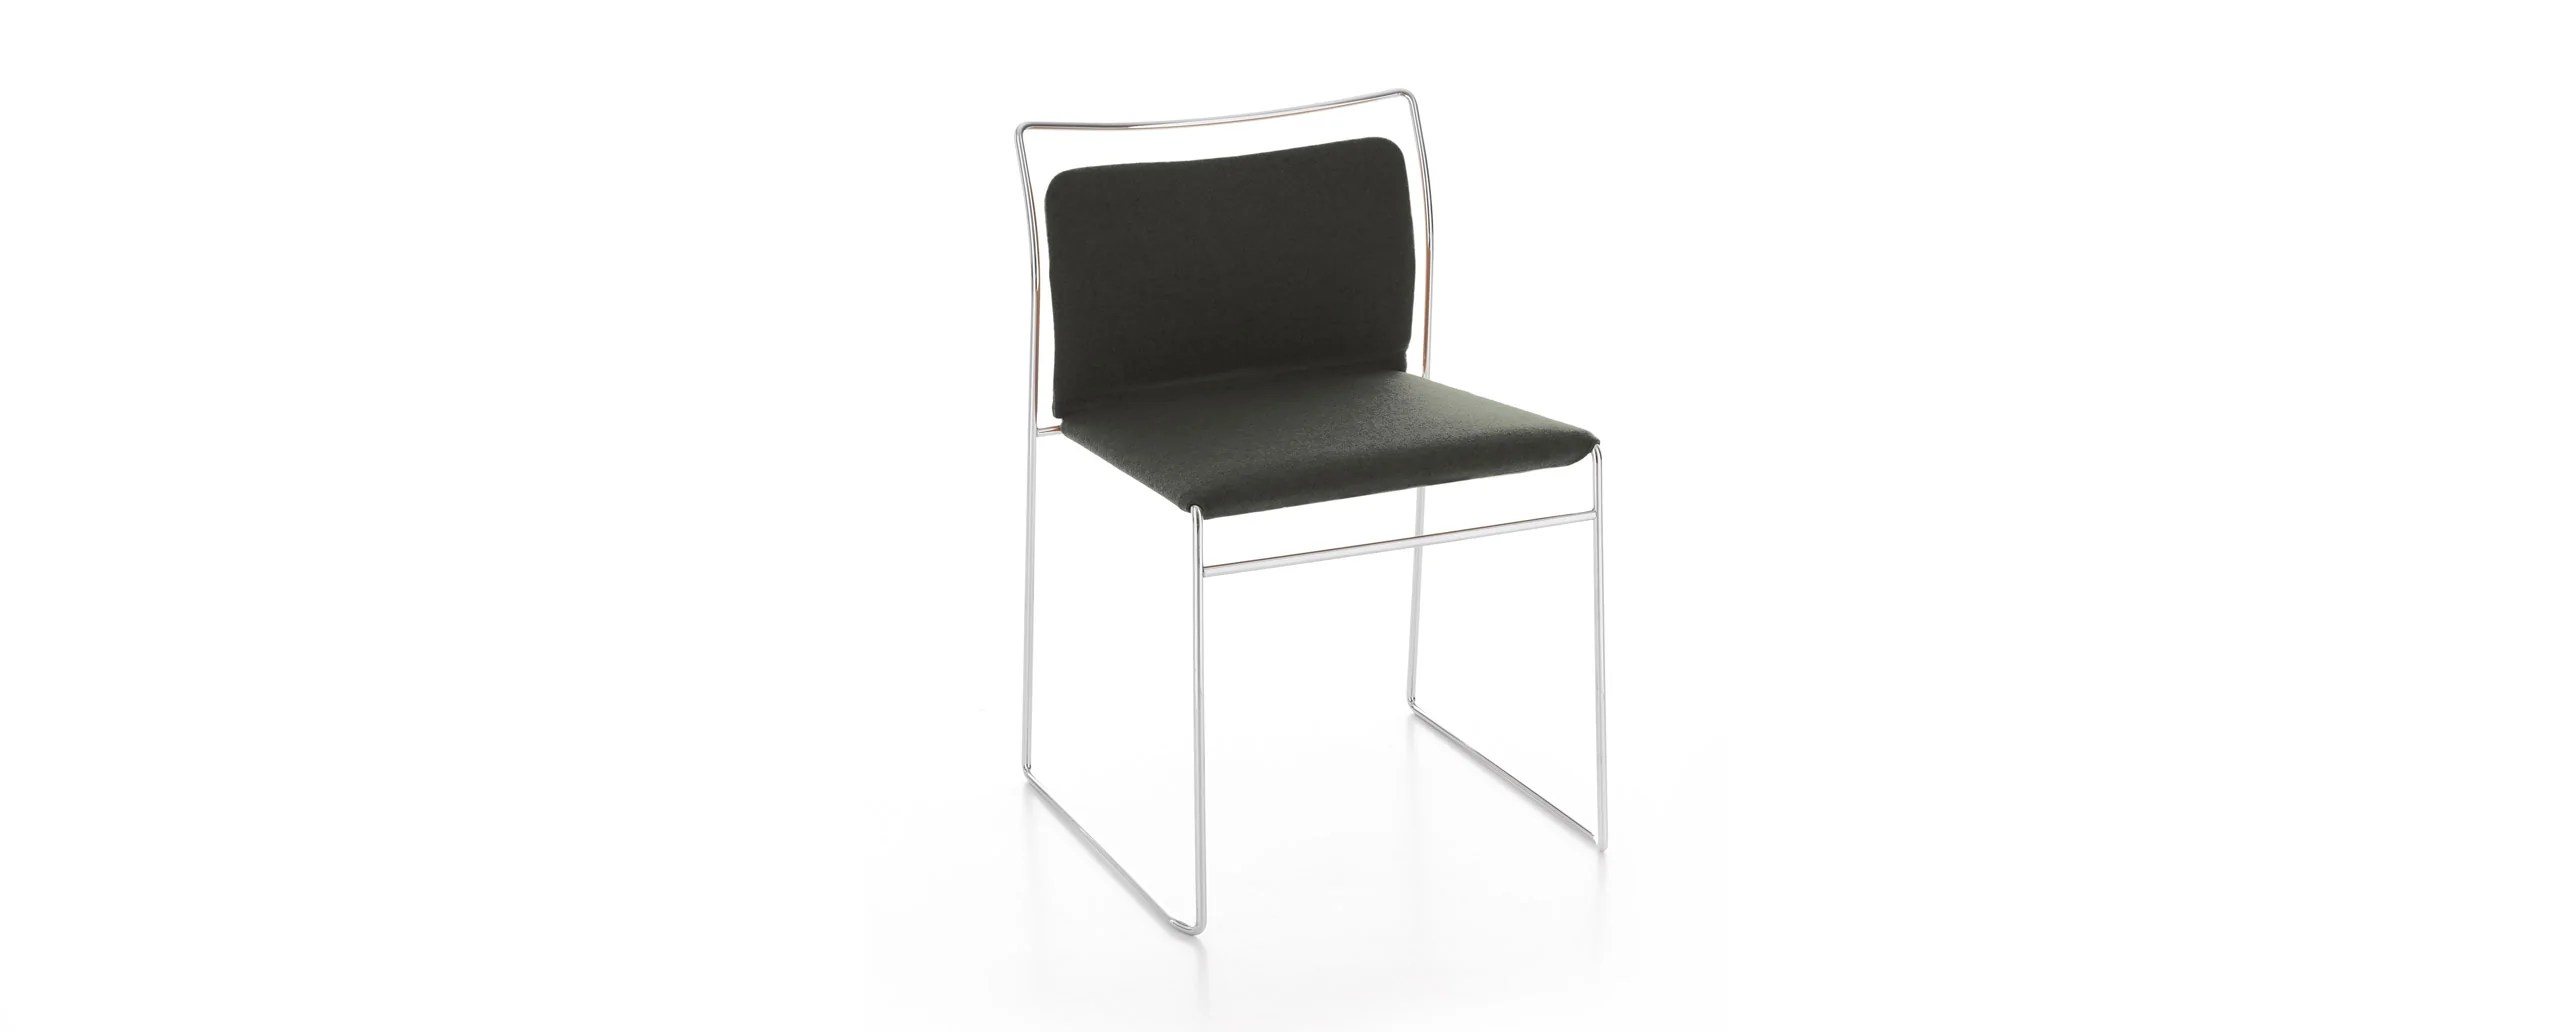 At Home Chairs Tulu Chair Chairs By Cassina At The Home Resource Sarasota